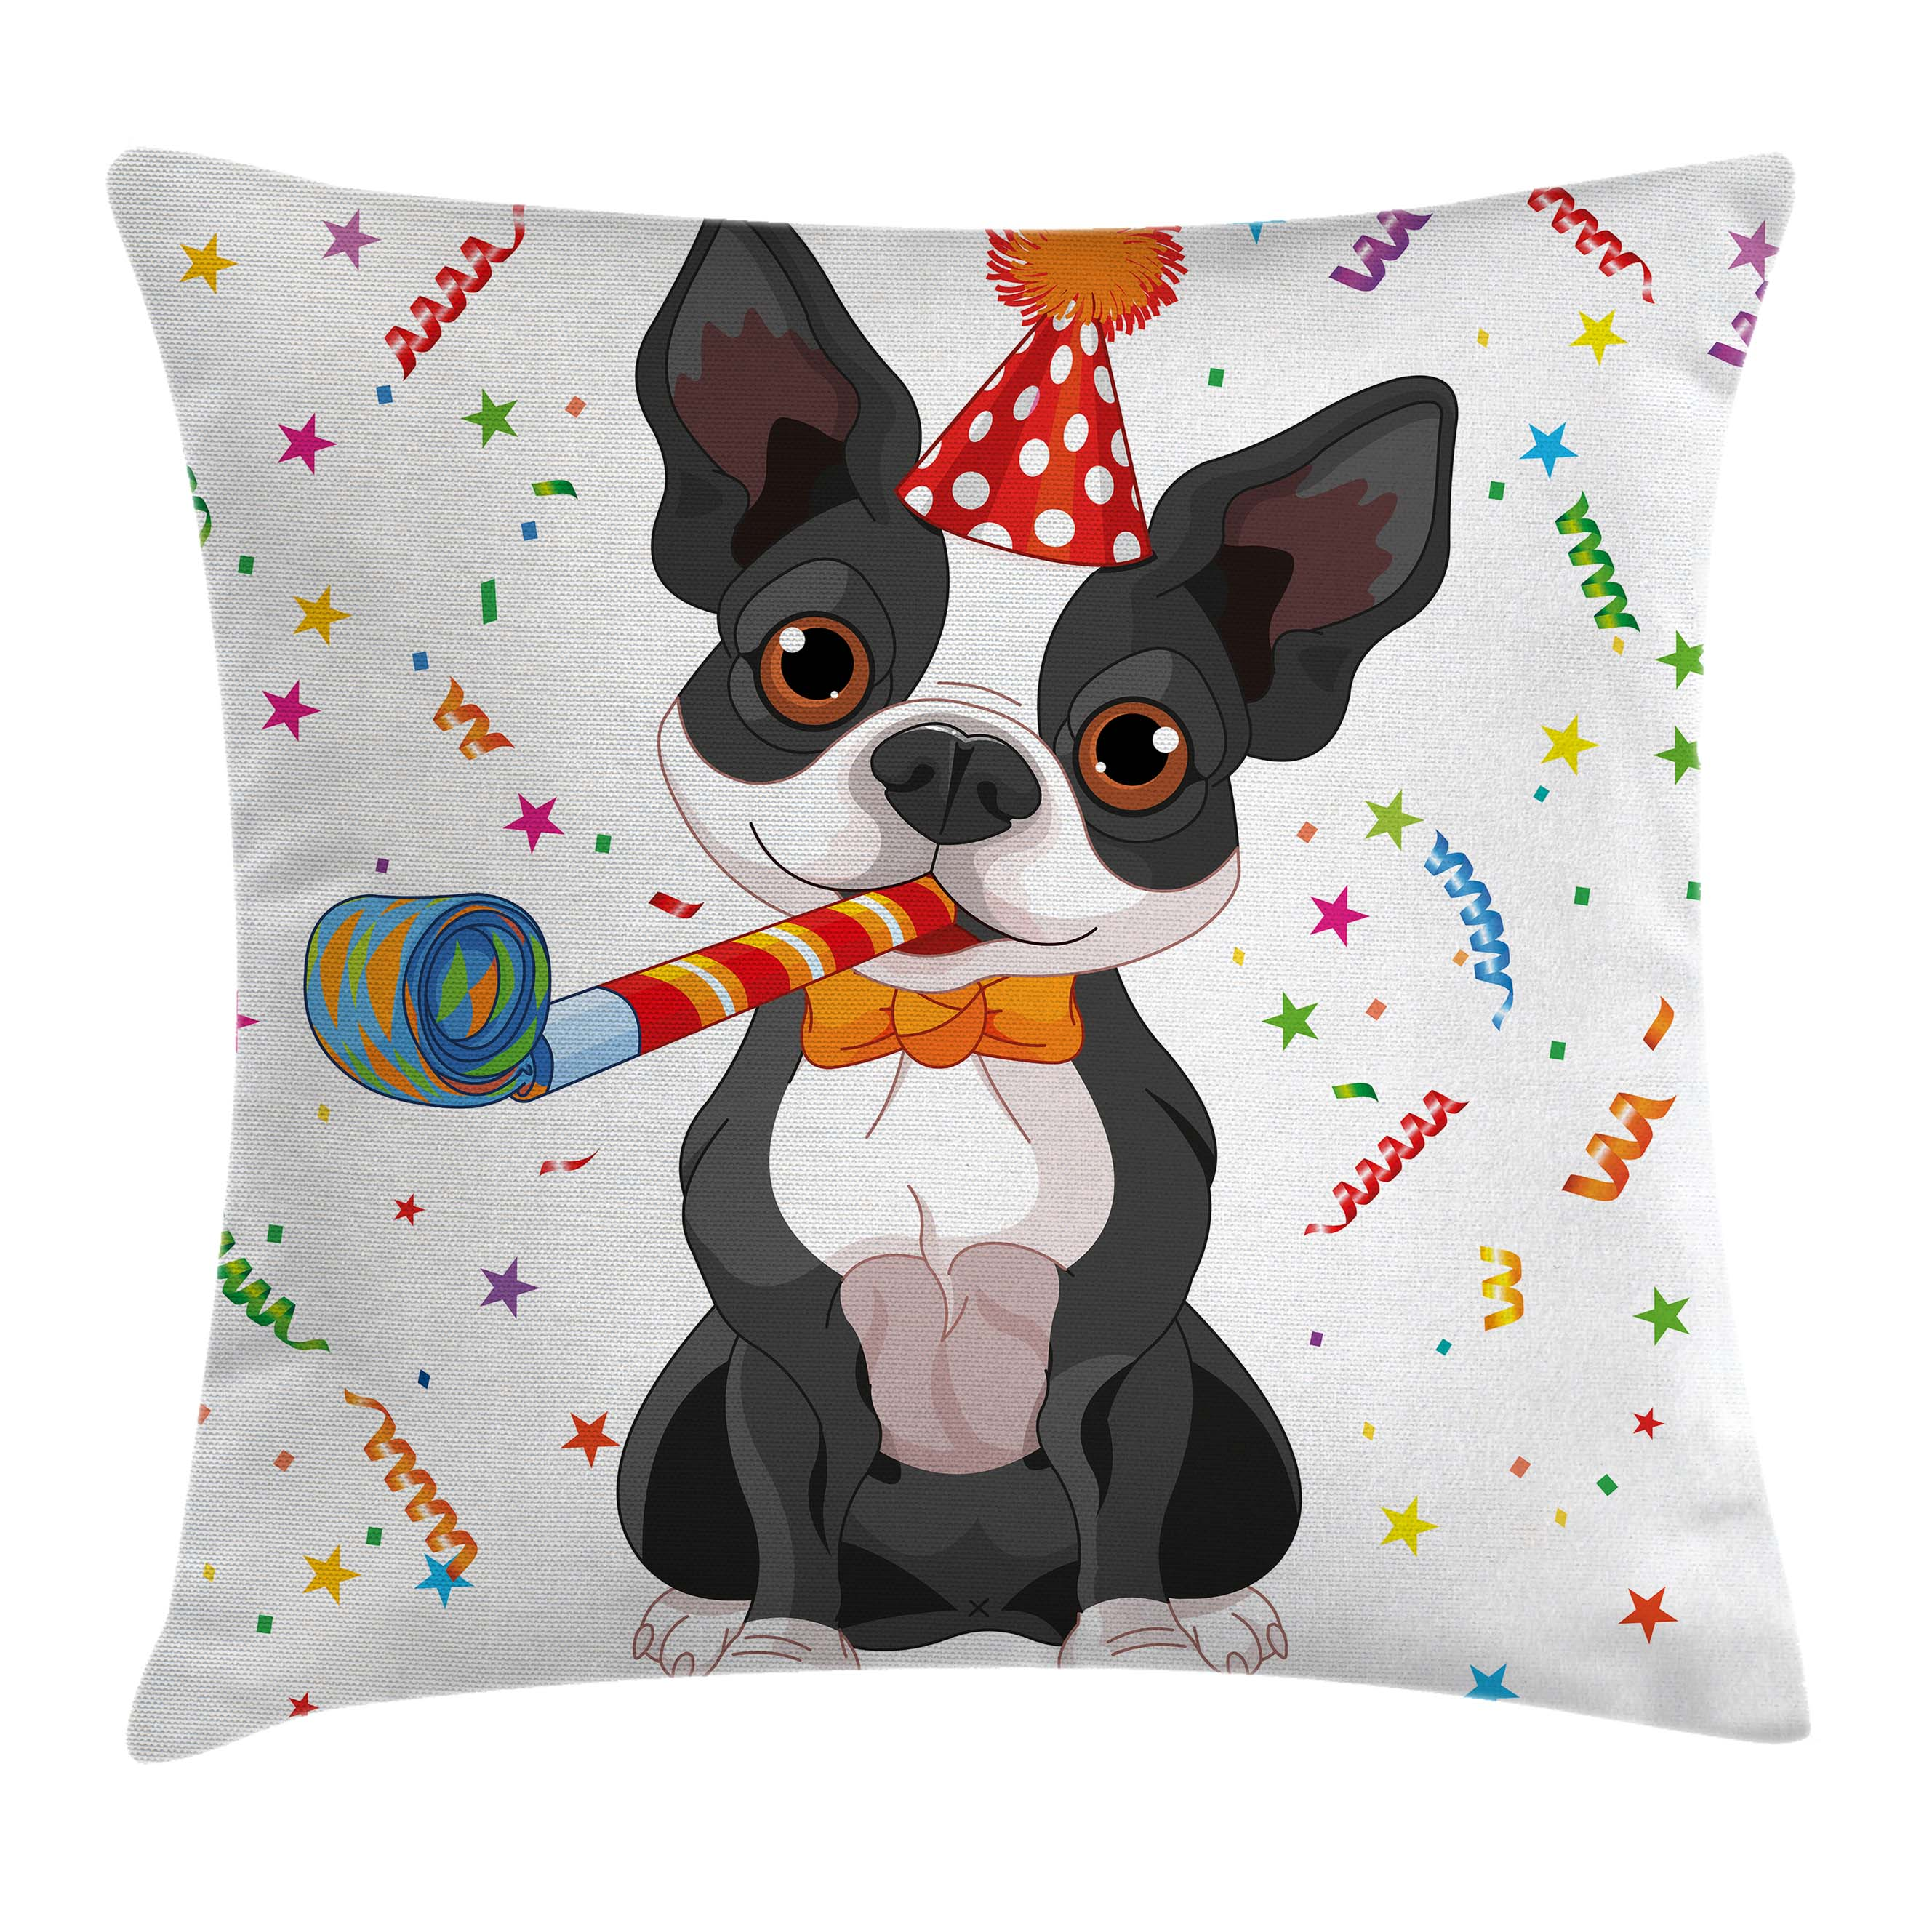 Birthday Decorations for Kids Throw Pillow Cushion Cover Black and